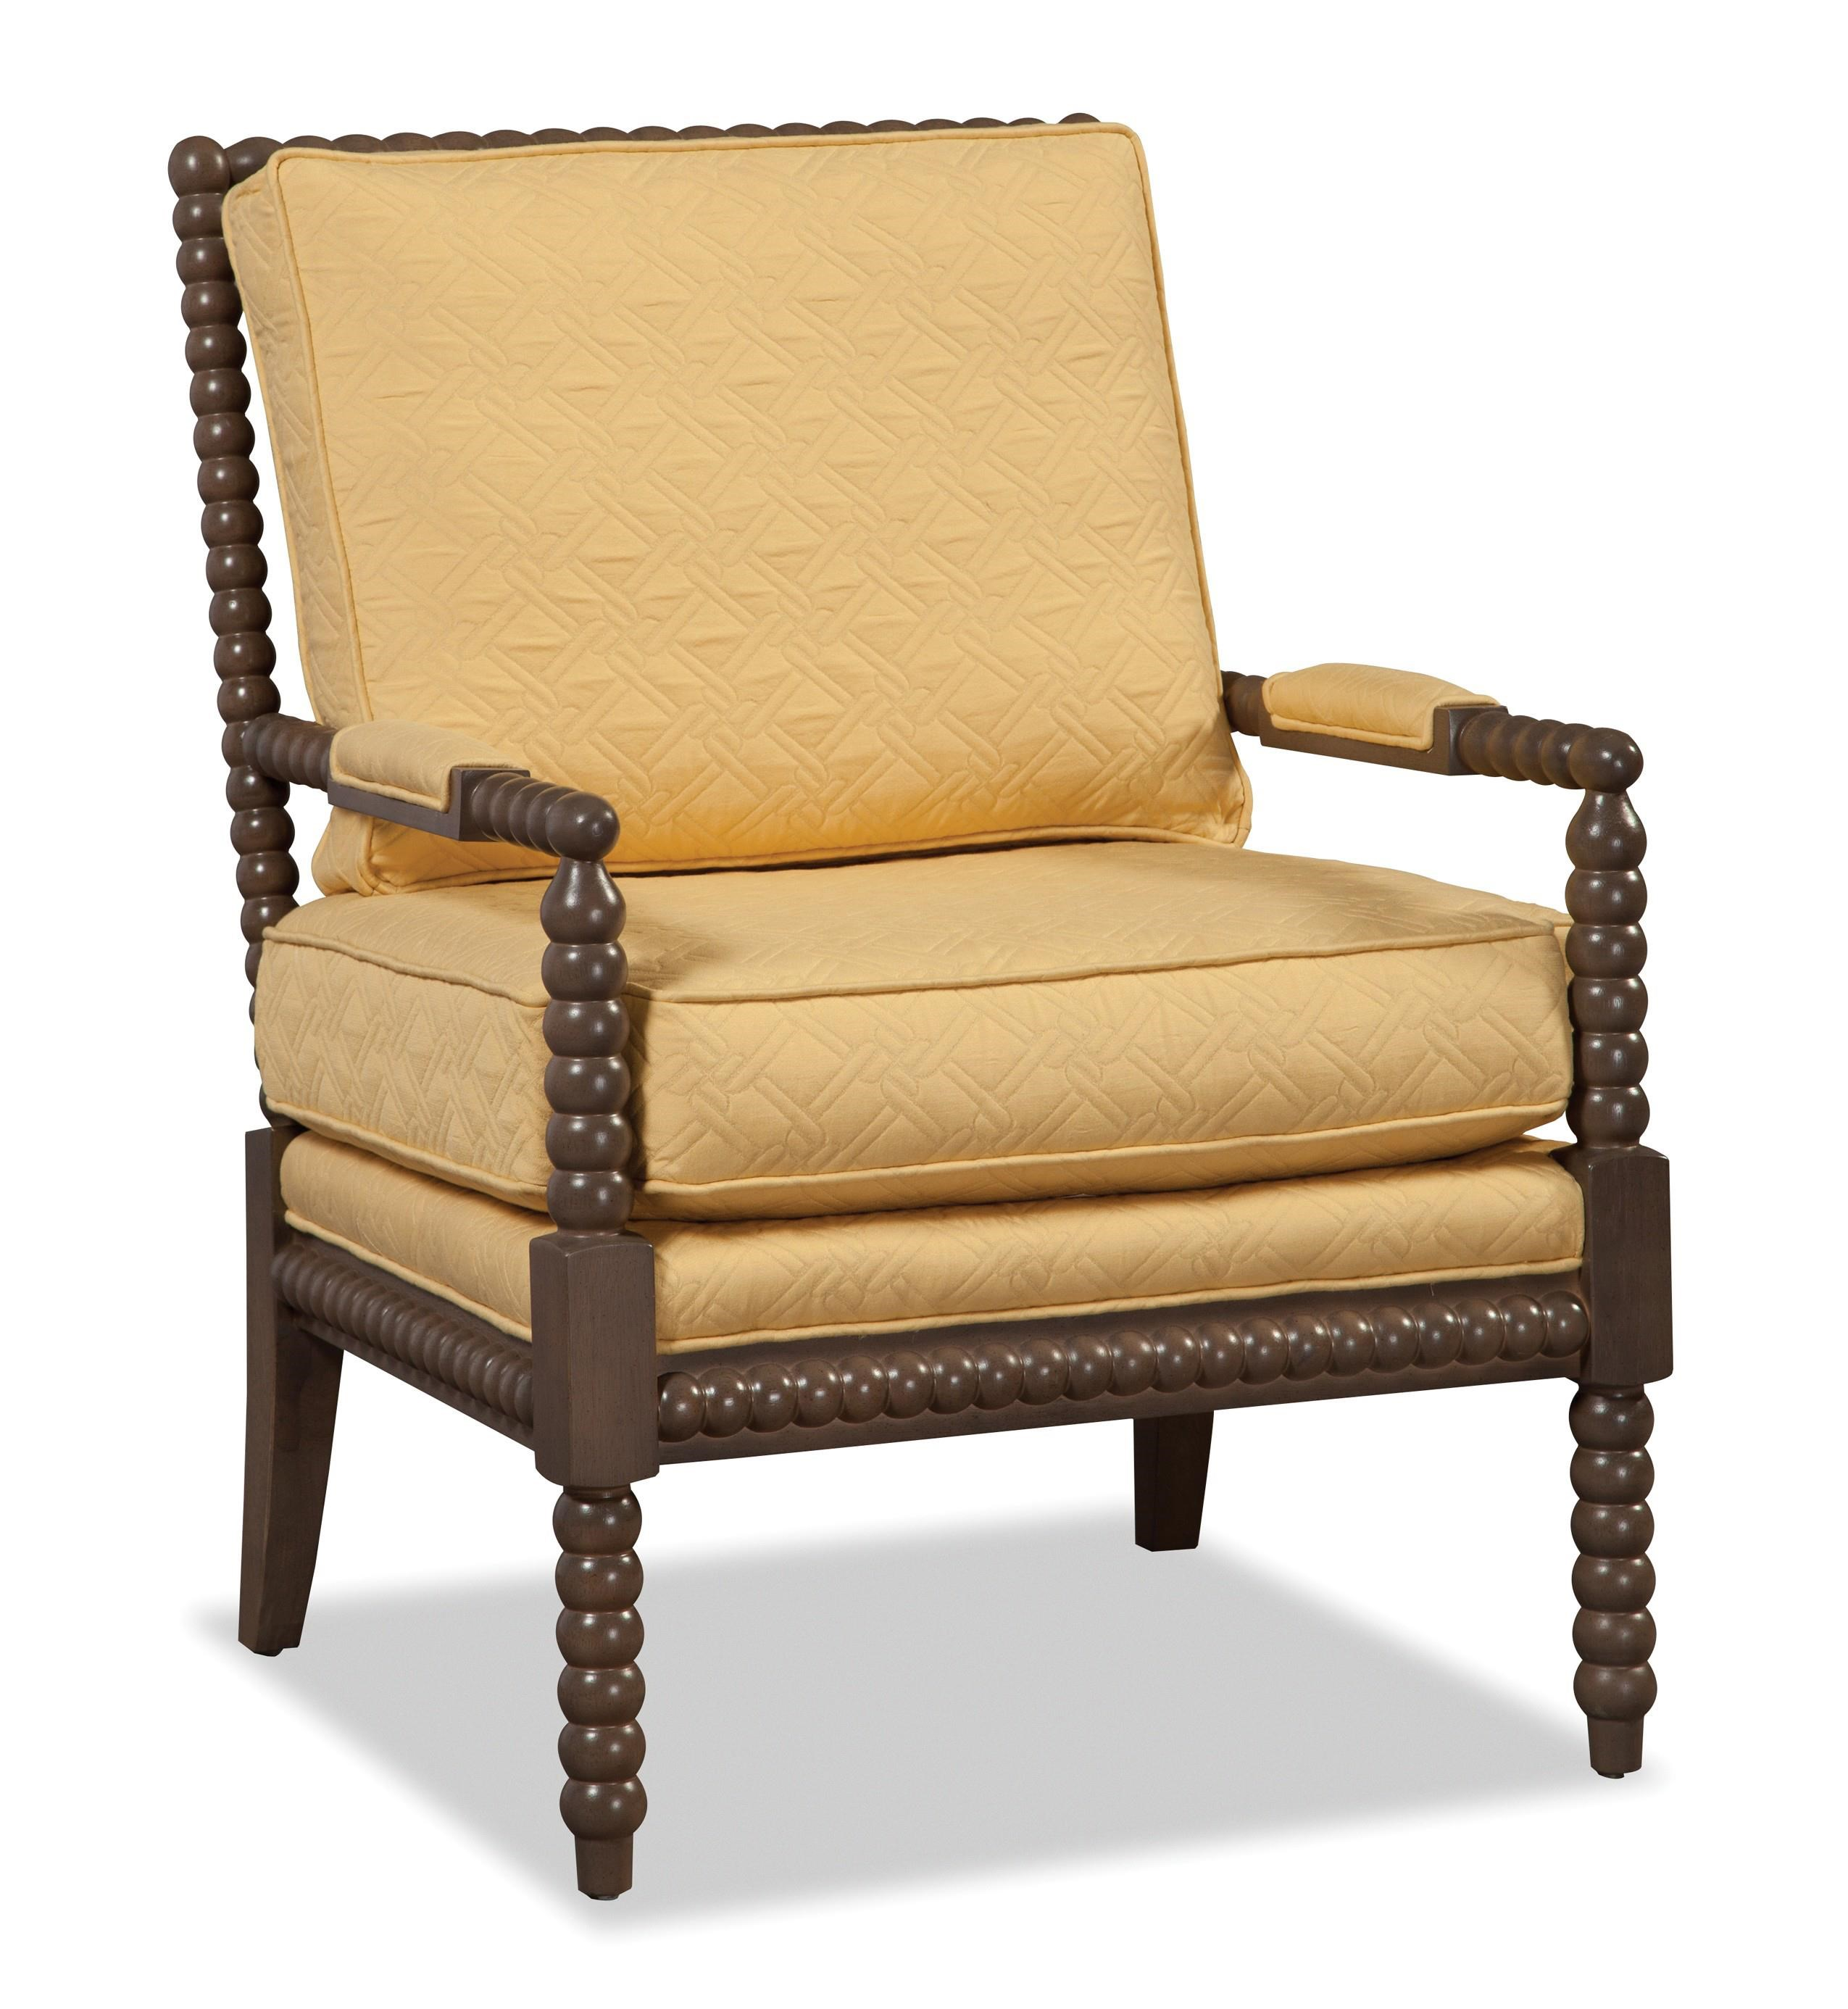 Hickory Craft Accent Chairs Traditional Chair With Spool